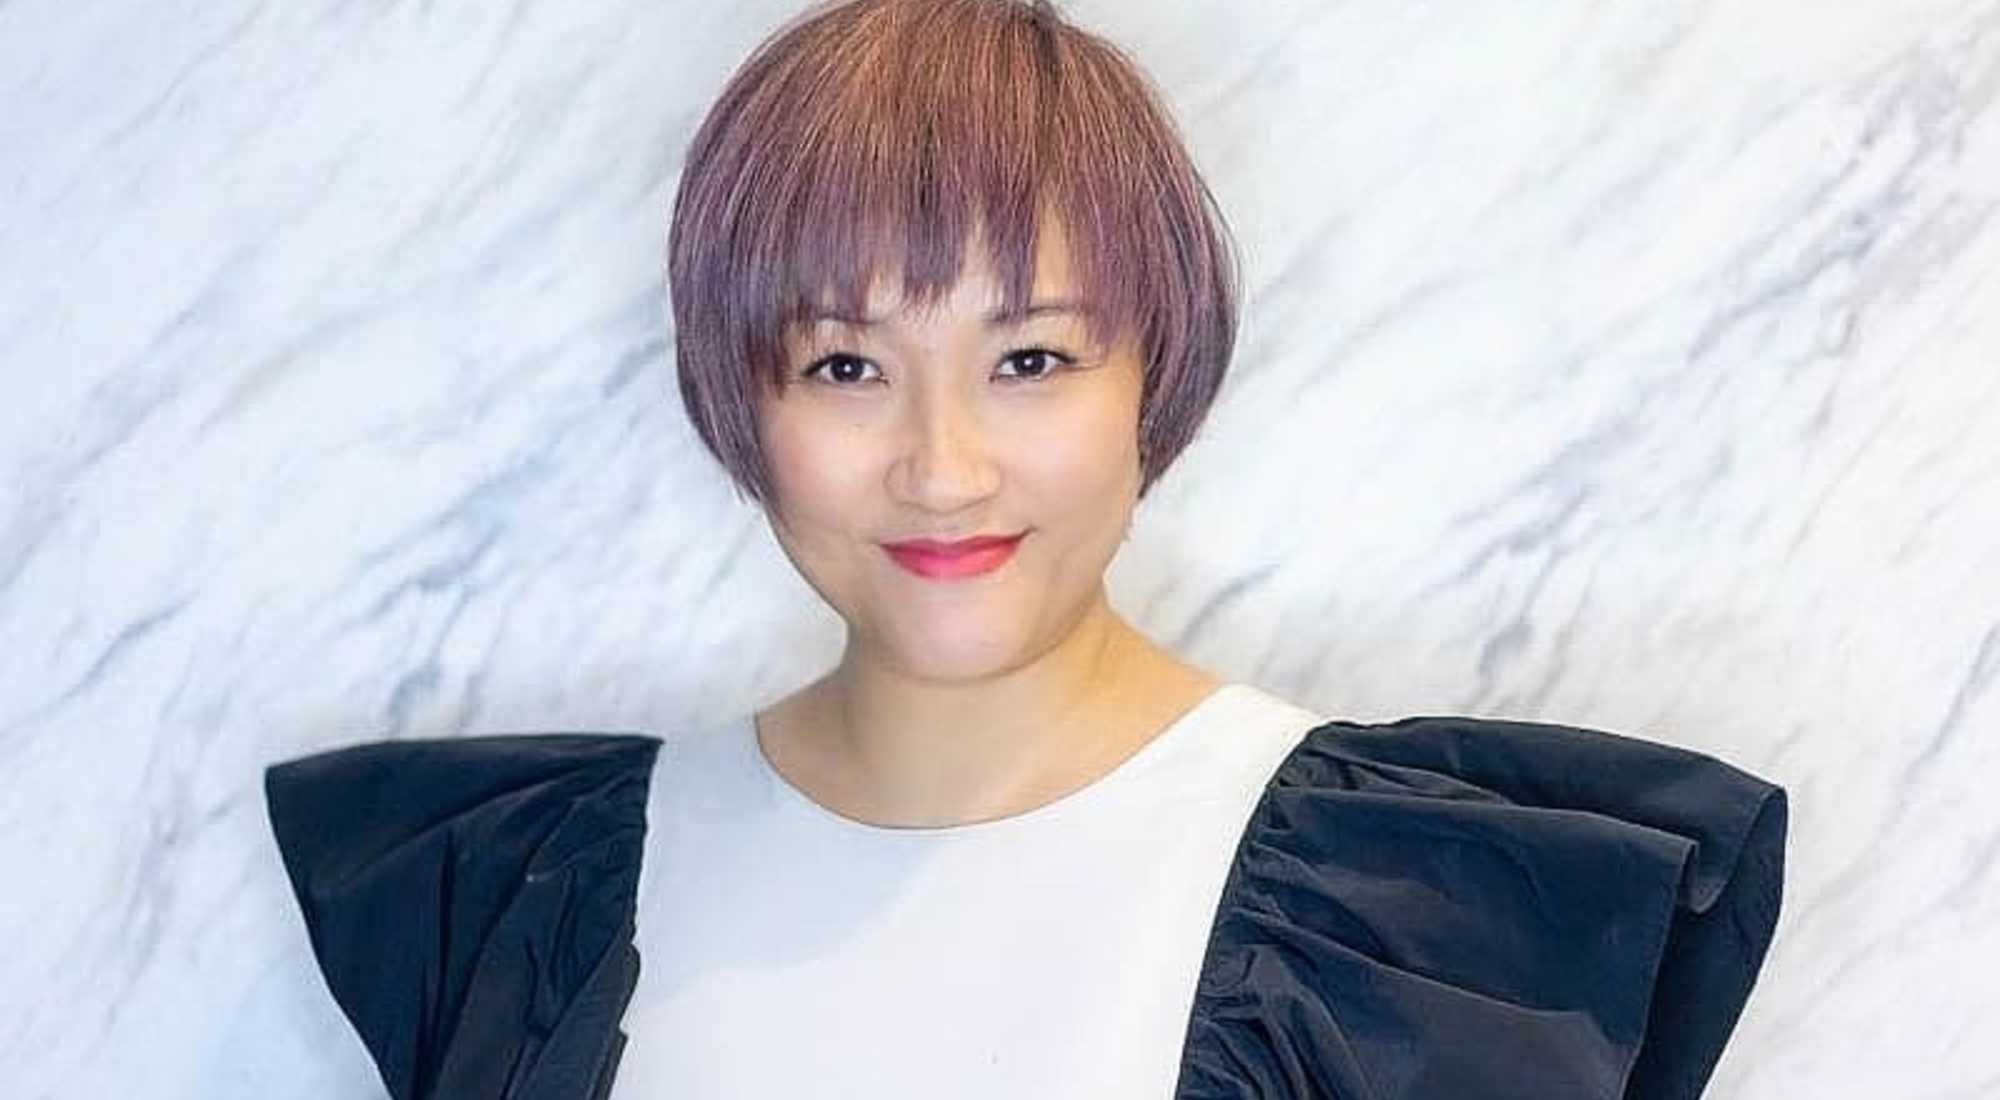 Chic Short Pixie Cut and Ash Pink Hair Colour For Mature Woman at The Urban Aesthetics